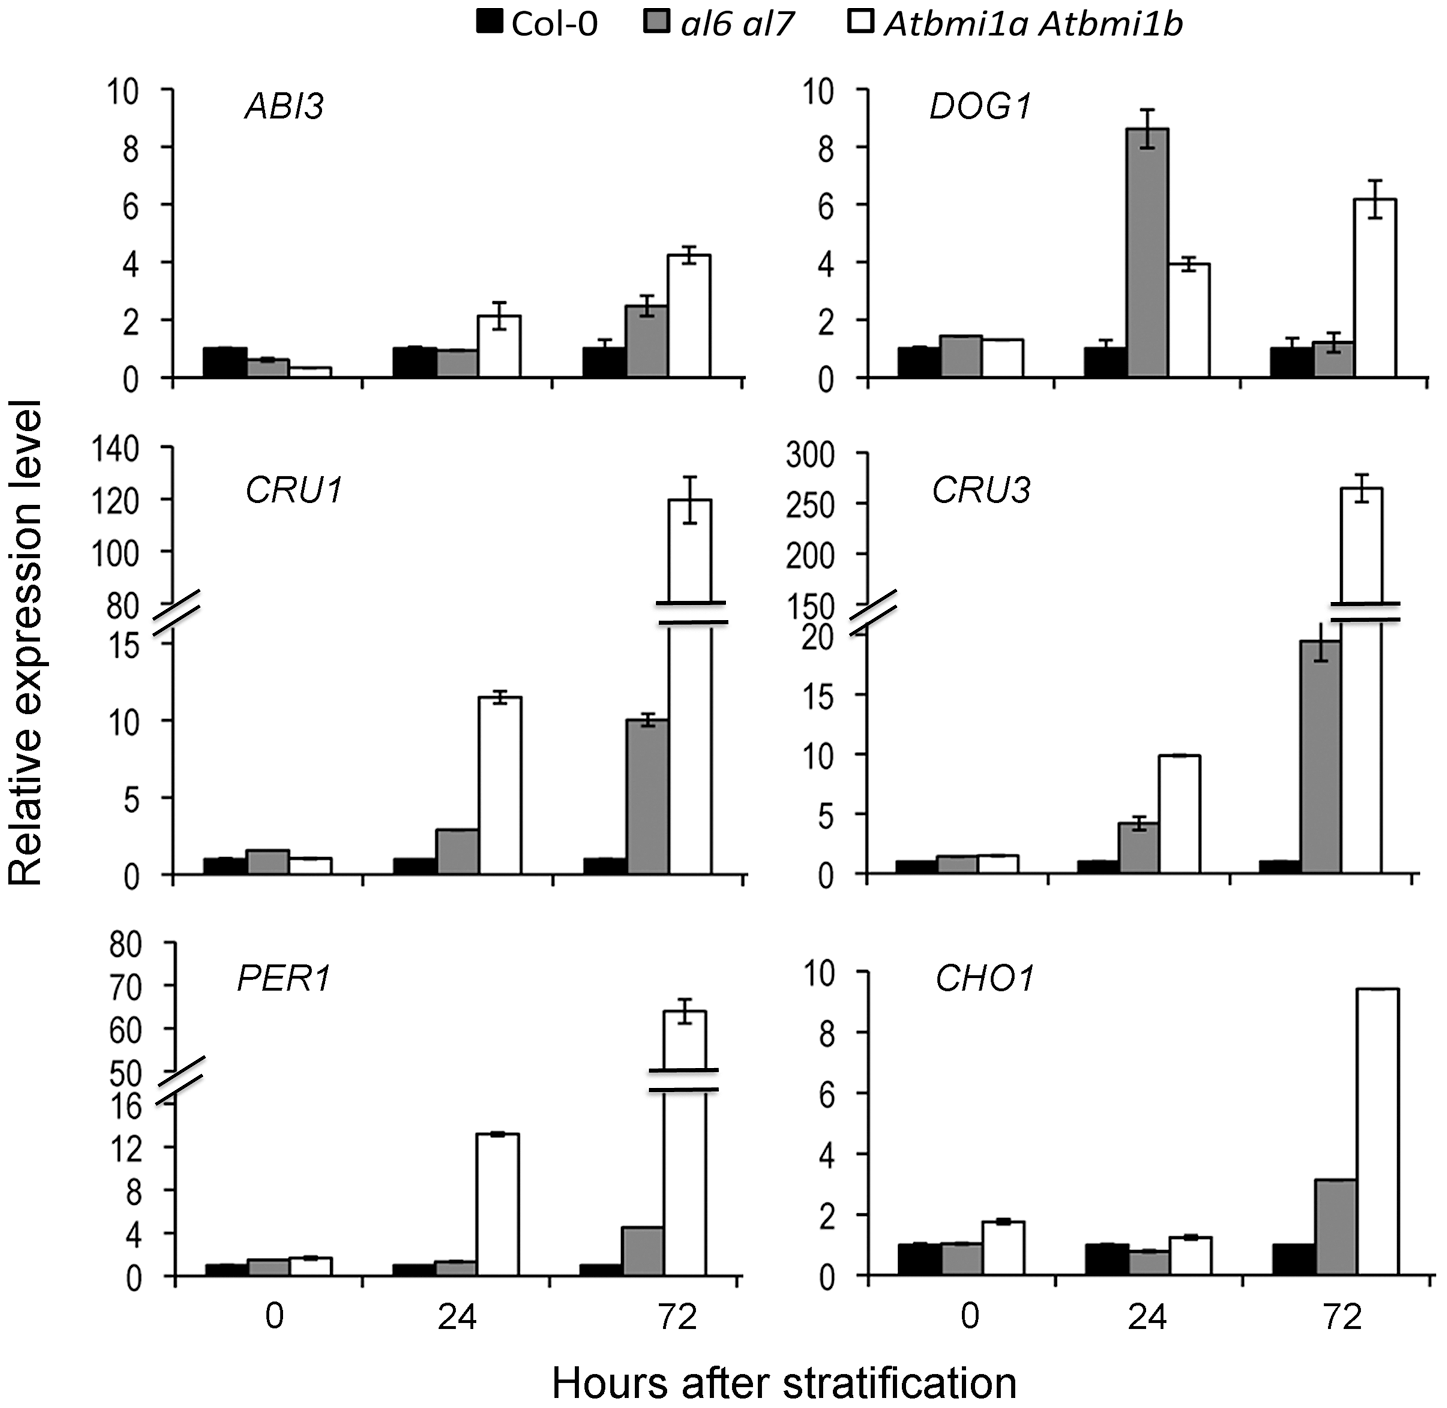 Relative expression levels of seed developmental genes in Col-0, <i>al6 al7</i> and <i>Atbmi1a Atbmi1b</i>.